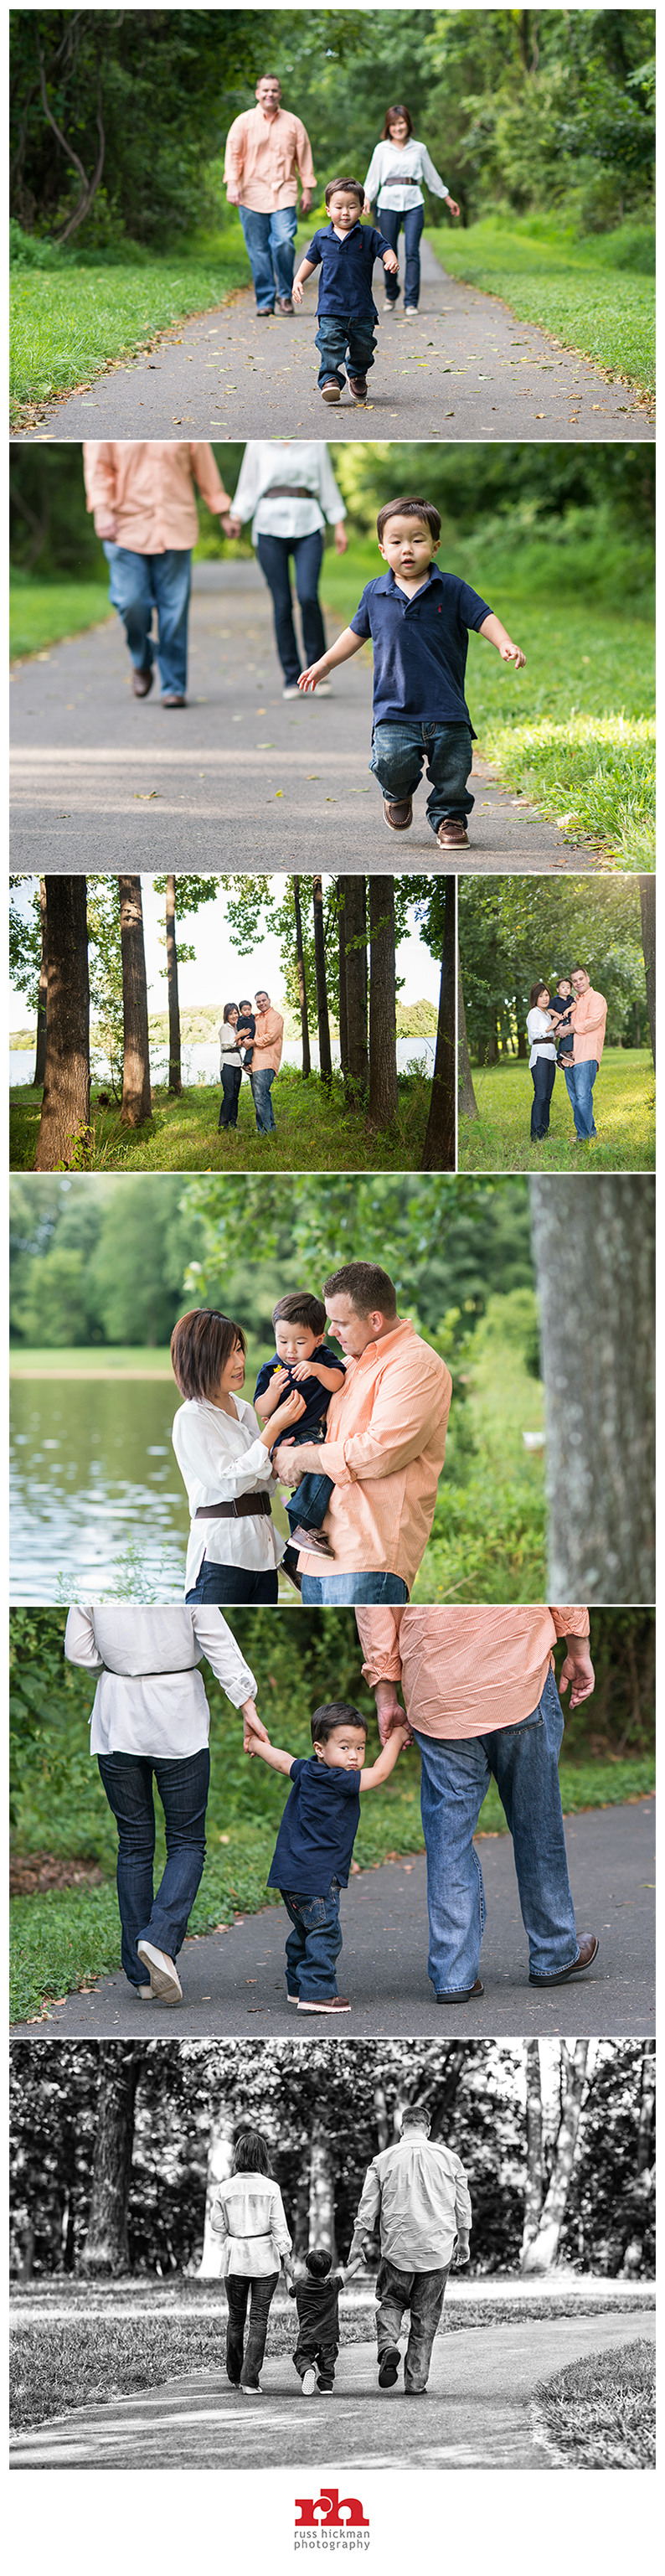 Philadelphia Family Photographer WFSFB003